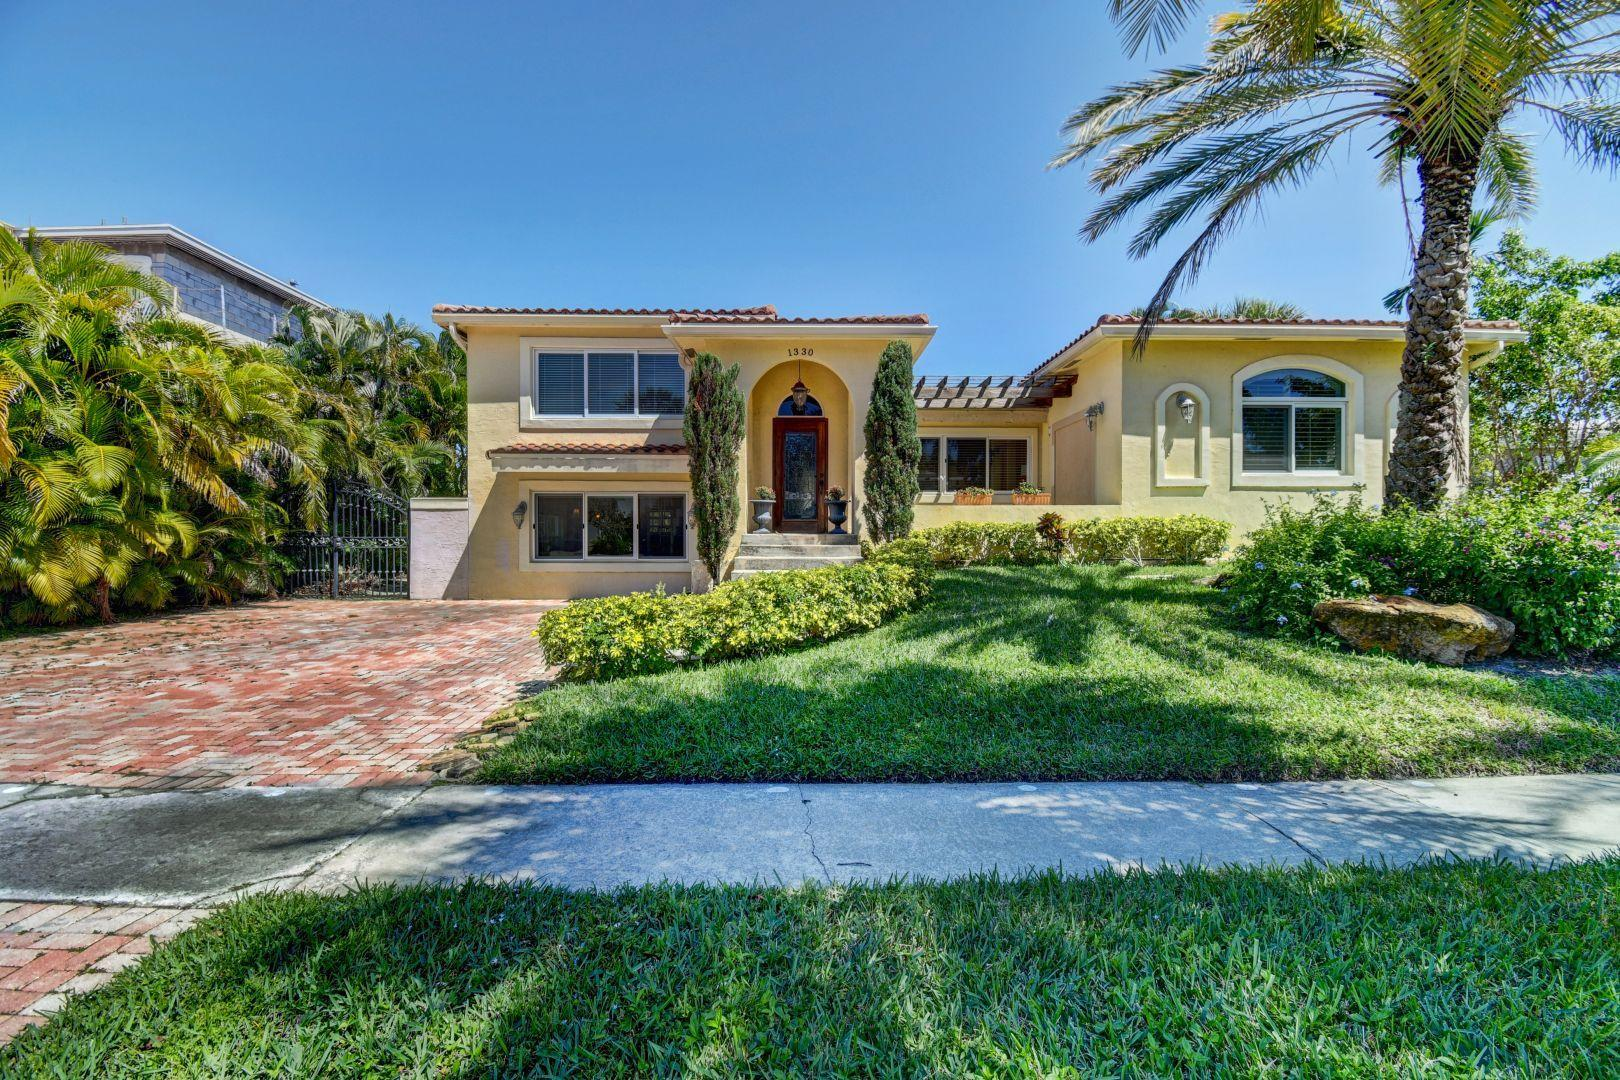 Home for sale in Whisem Boca Raton Florida